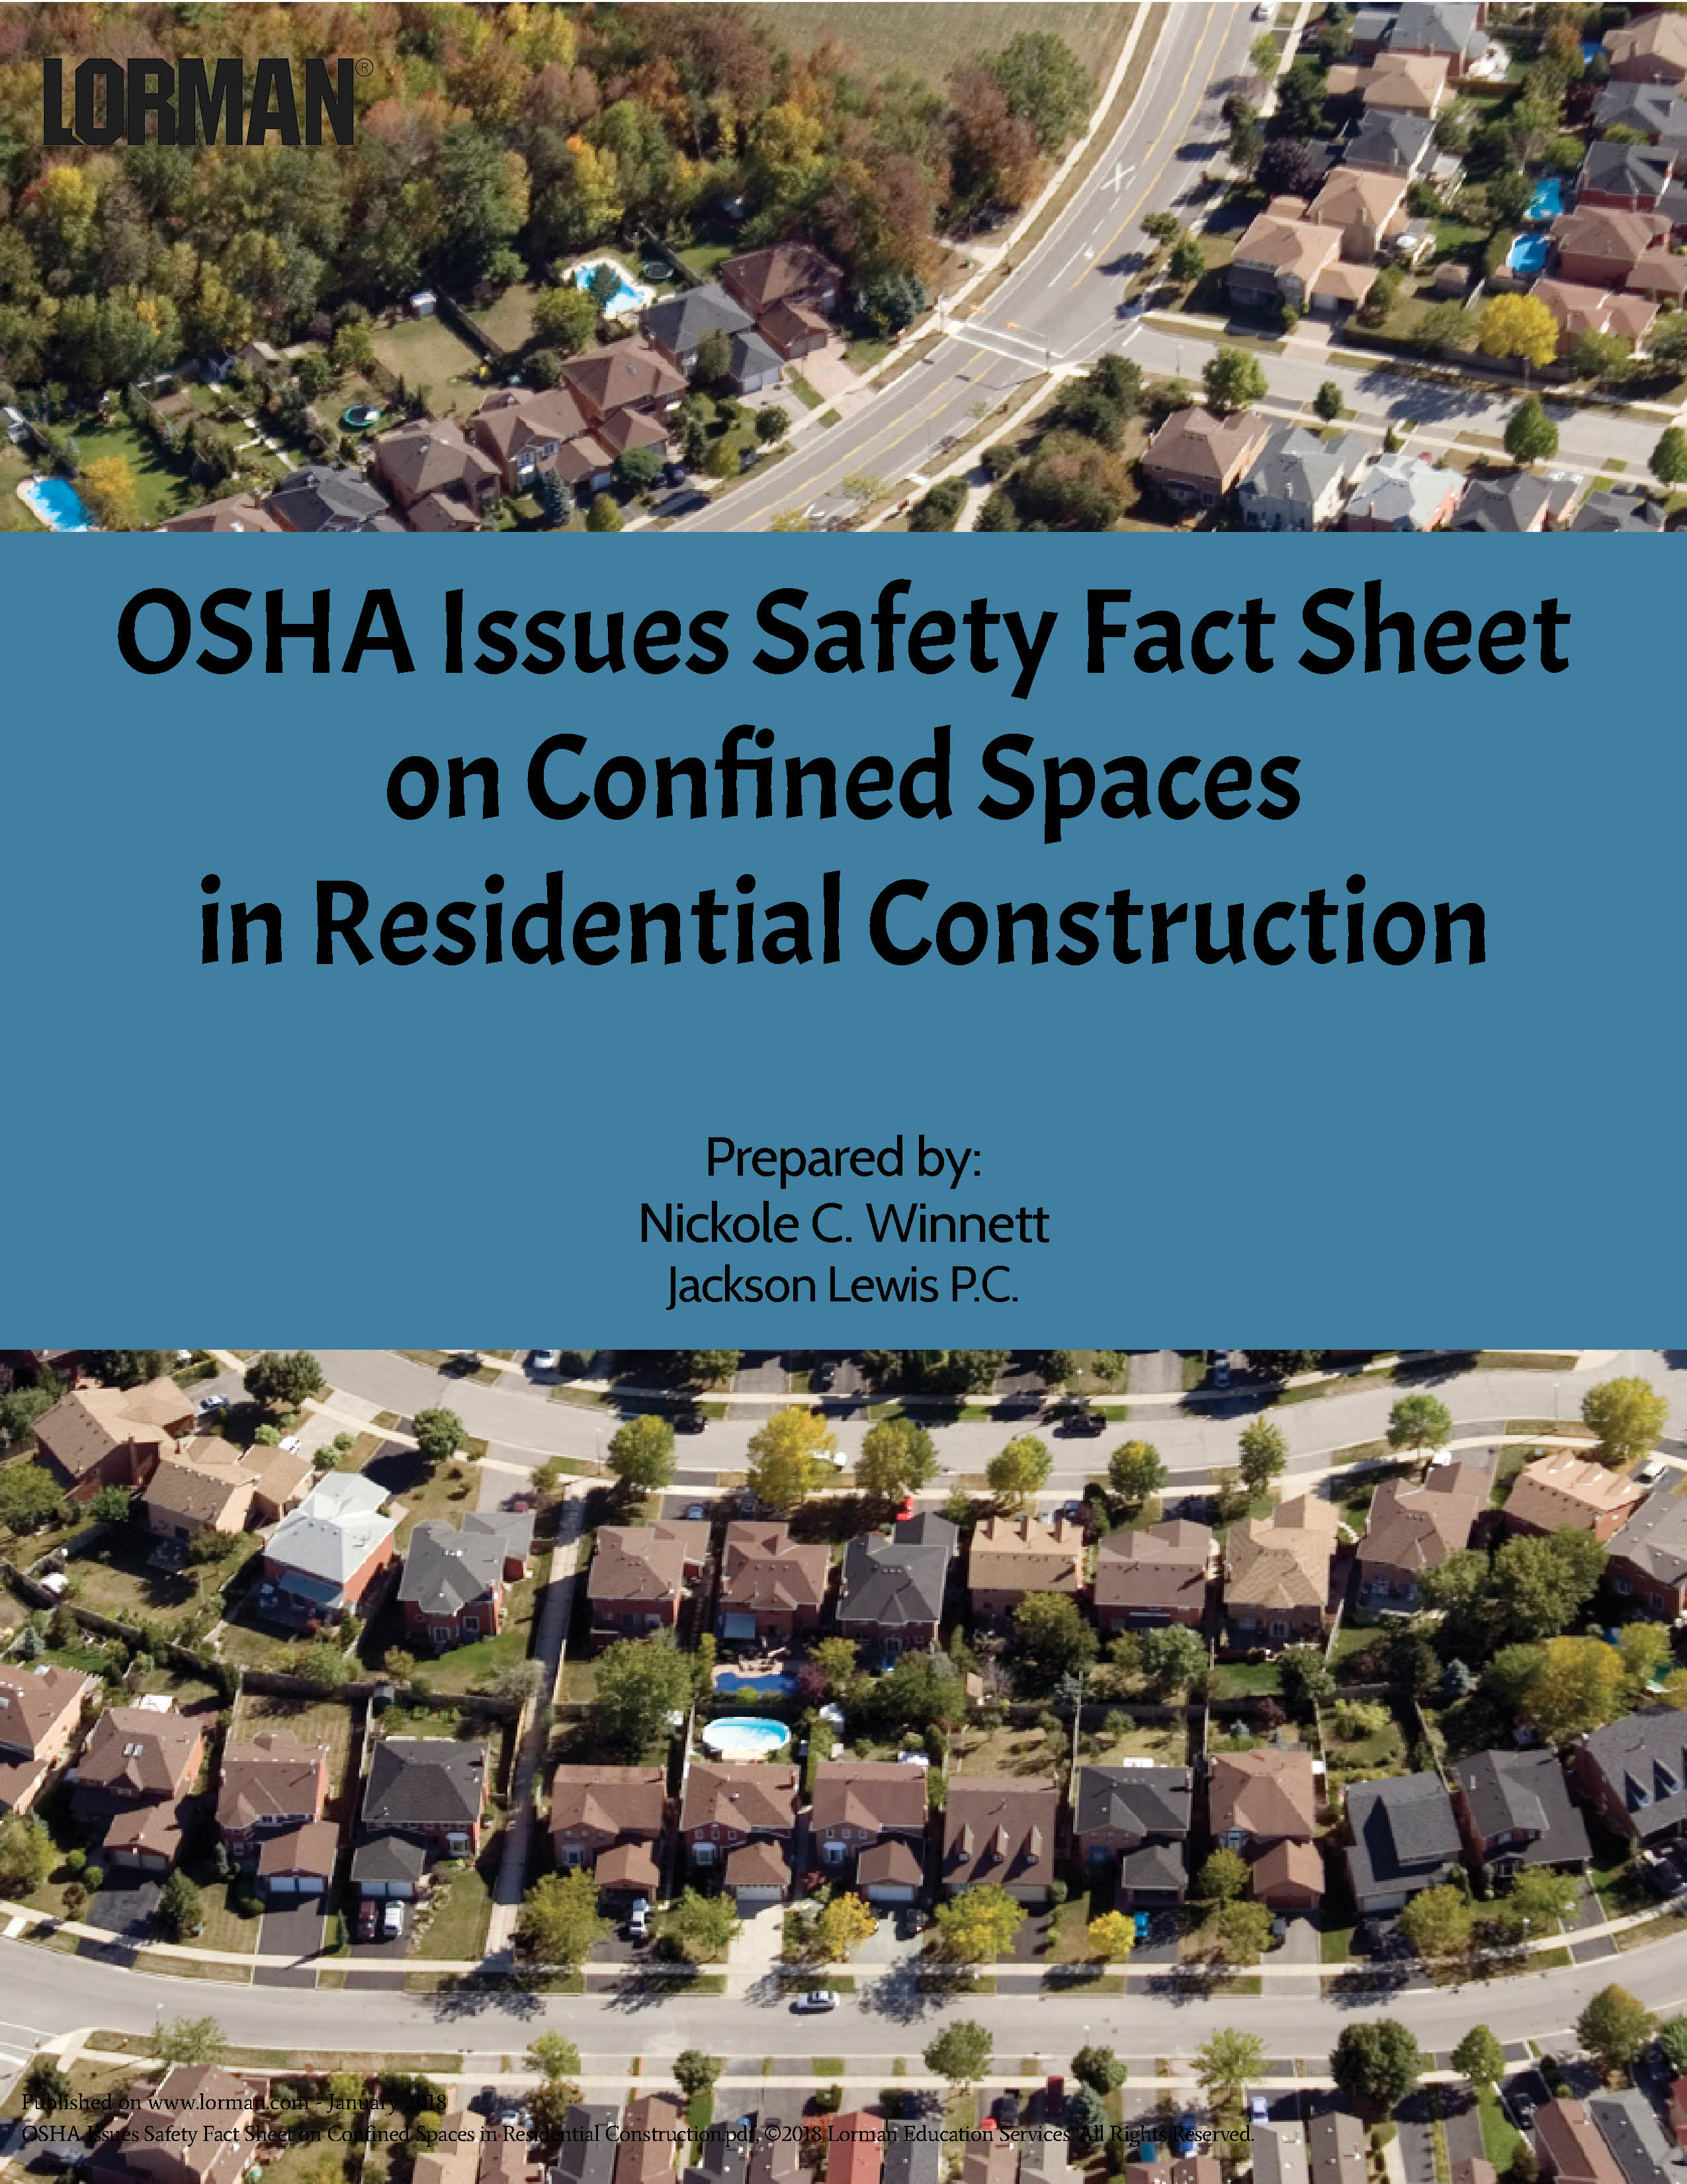 OSHA Issues Safety Fact Sheet on Confined Spaces in